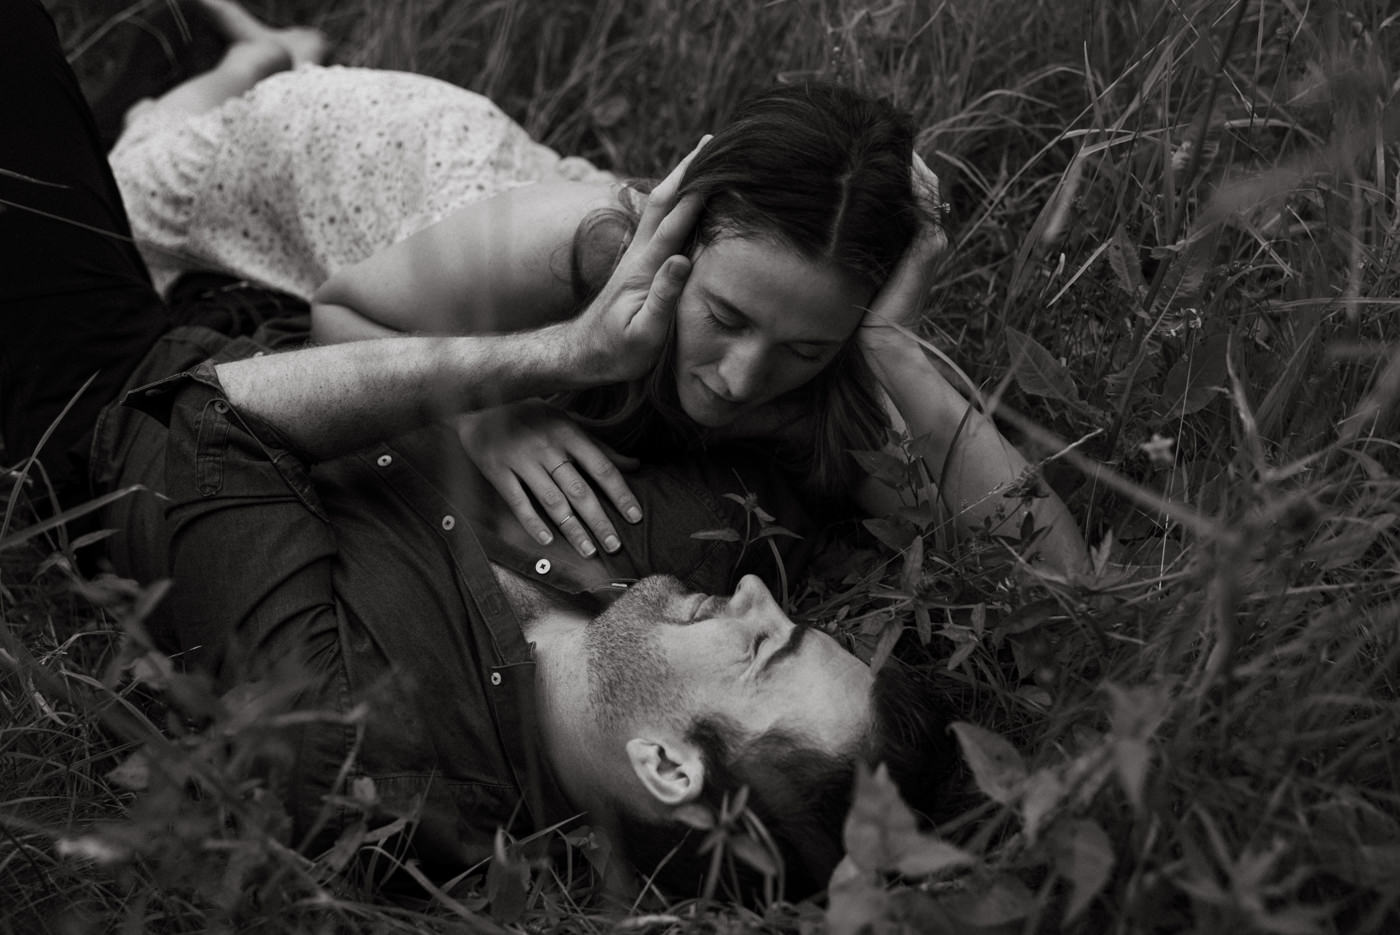 couple lying in tall grass, man gently holding woman's face